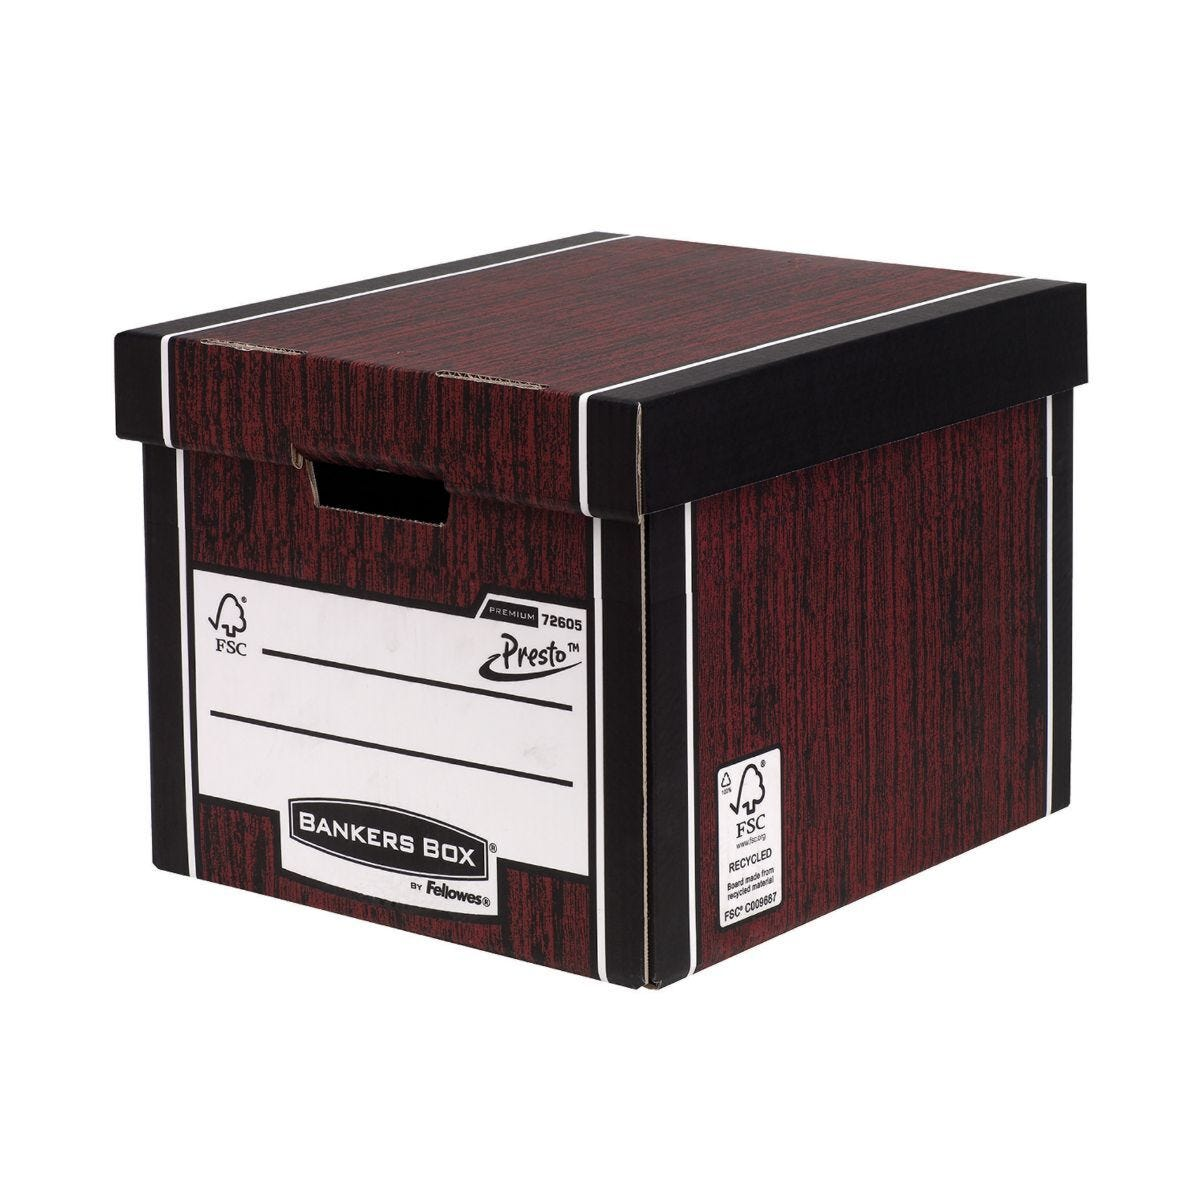 Bankers Box by Fellowes Premium 725 Classic Storage Boxes with PRESTO